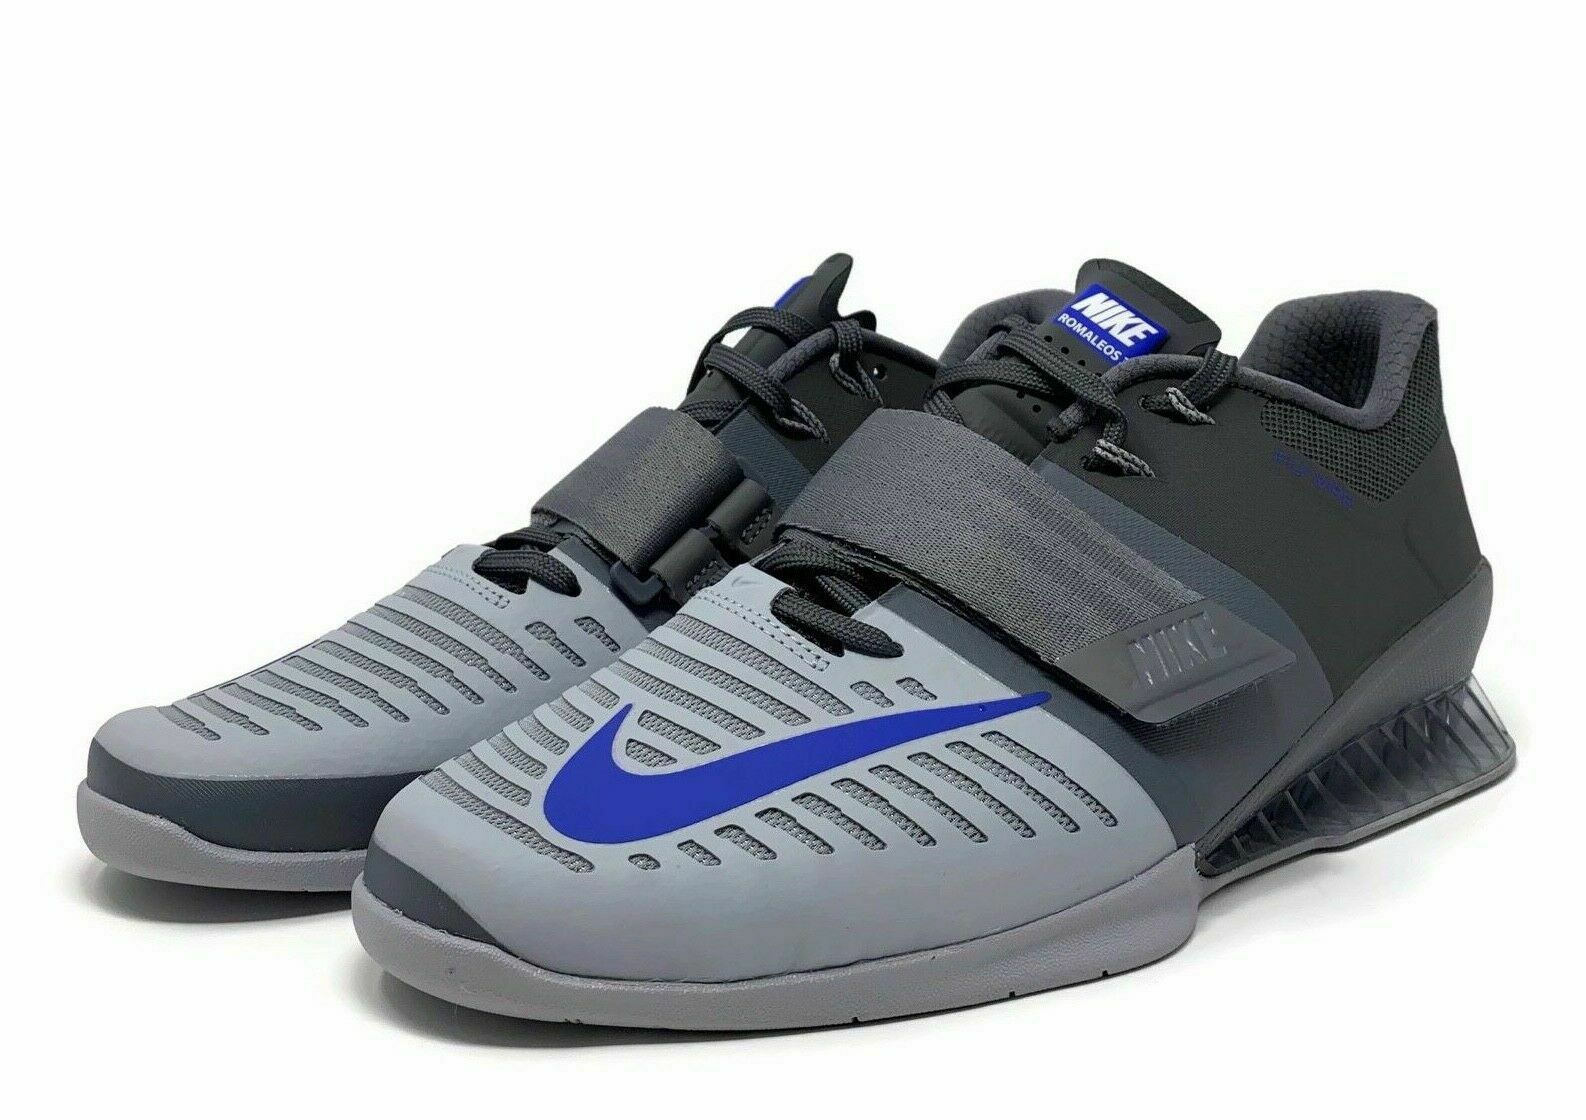 NEW Nike Sz 15 Romaleos 3 Weightlifting Training shoes Grey bluee 852933-001